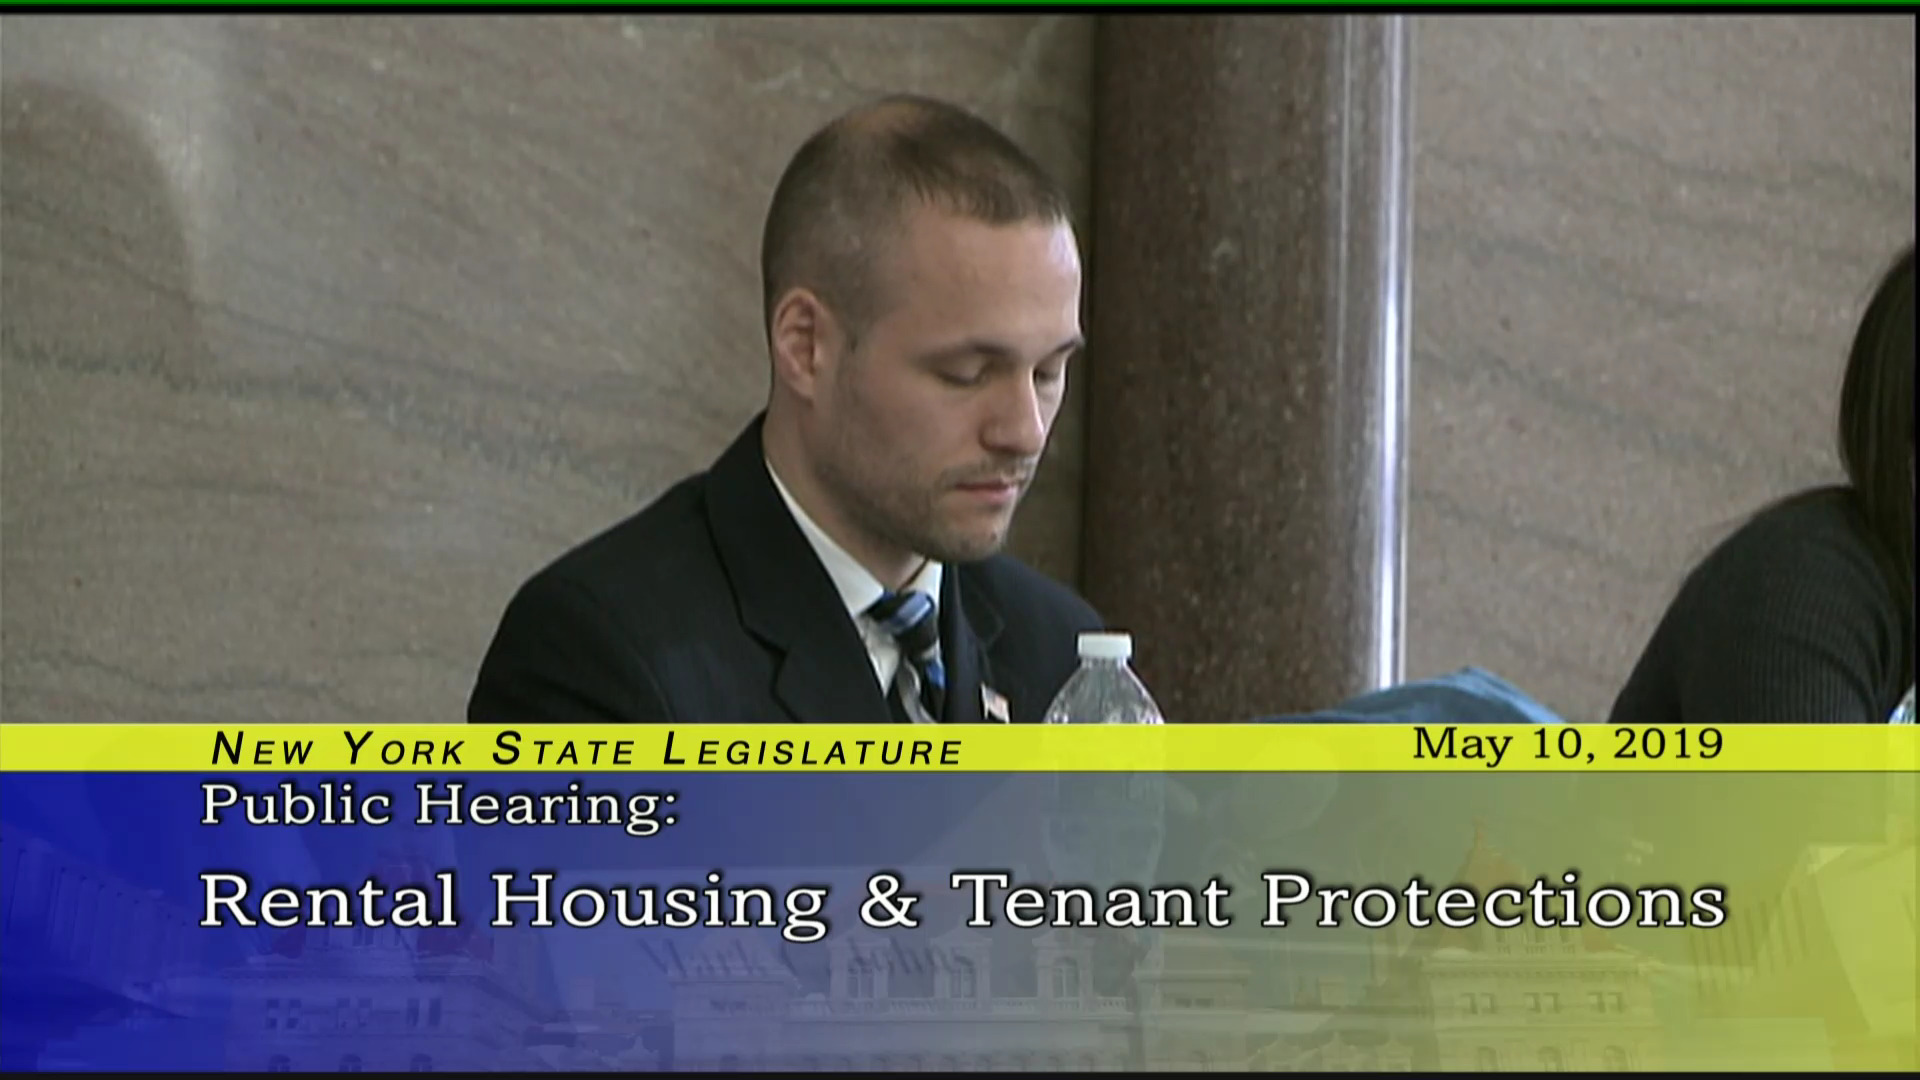 Barnwell Discusses Rental Housing and Affordable Housing